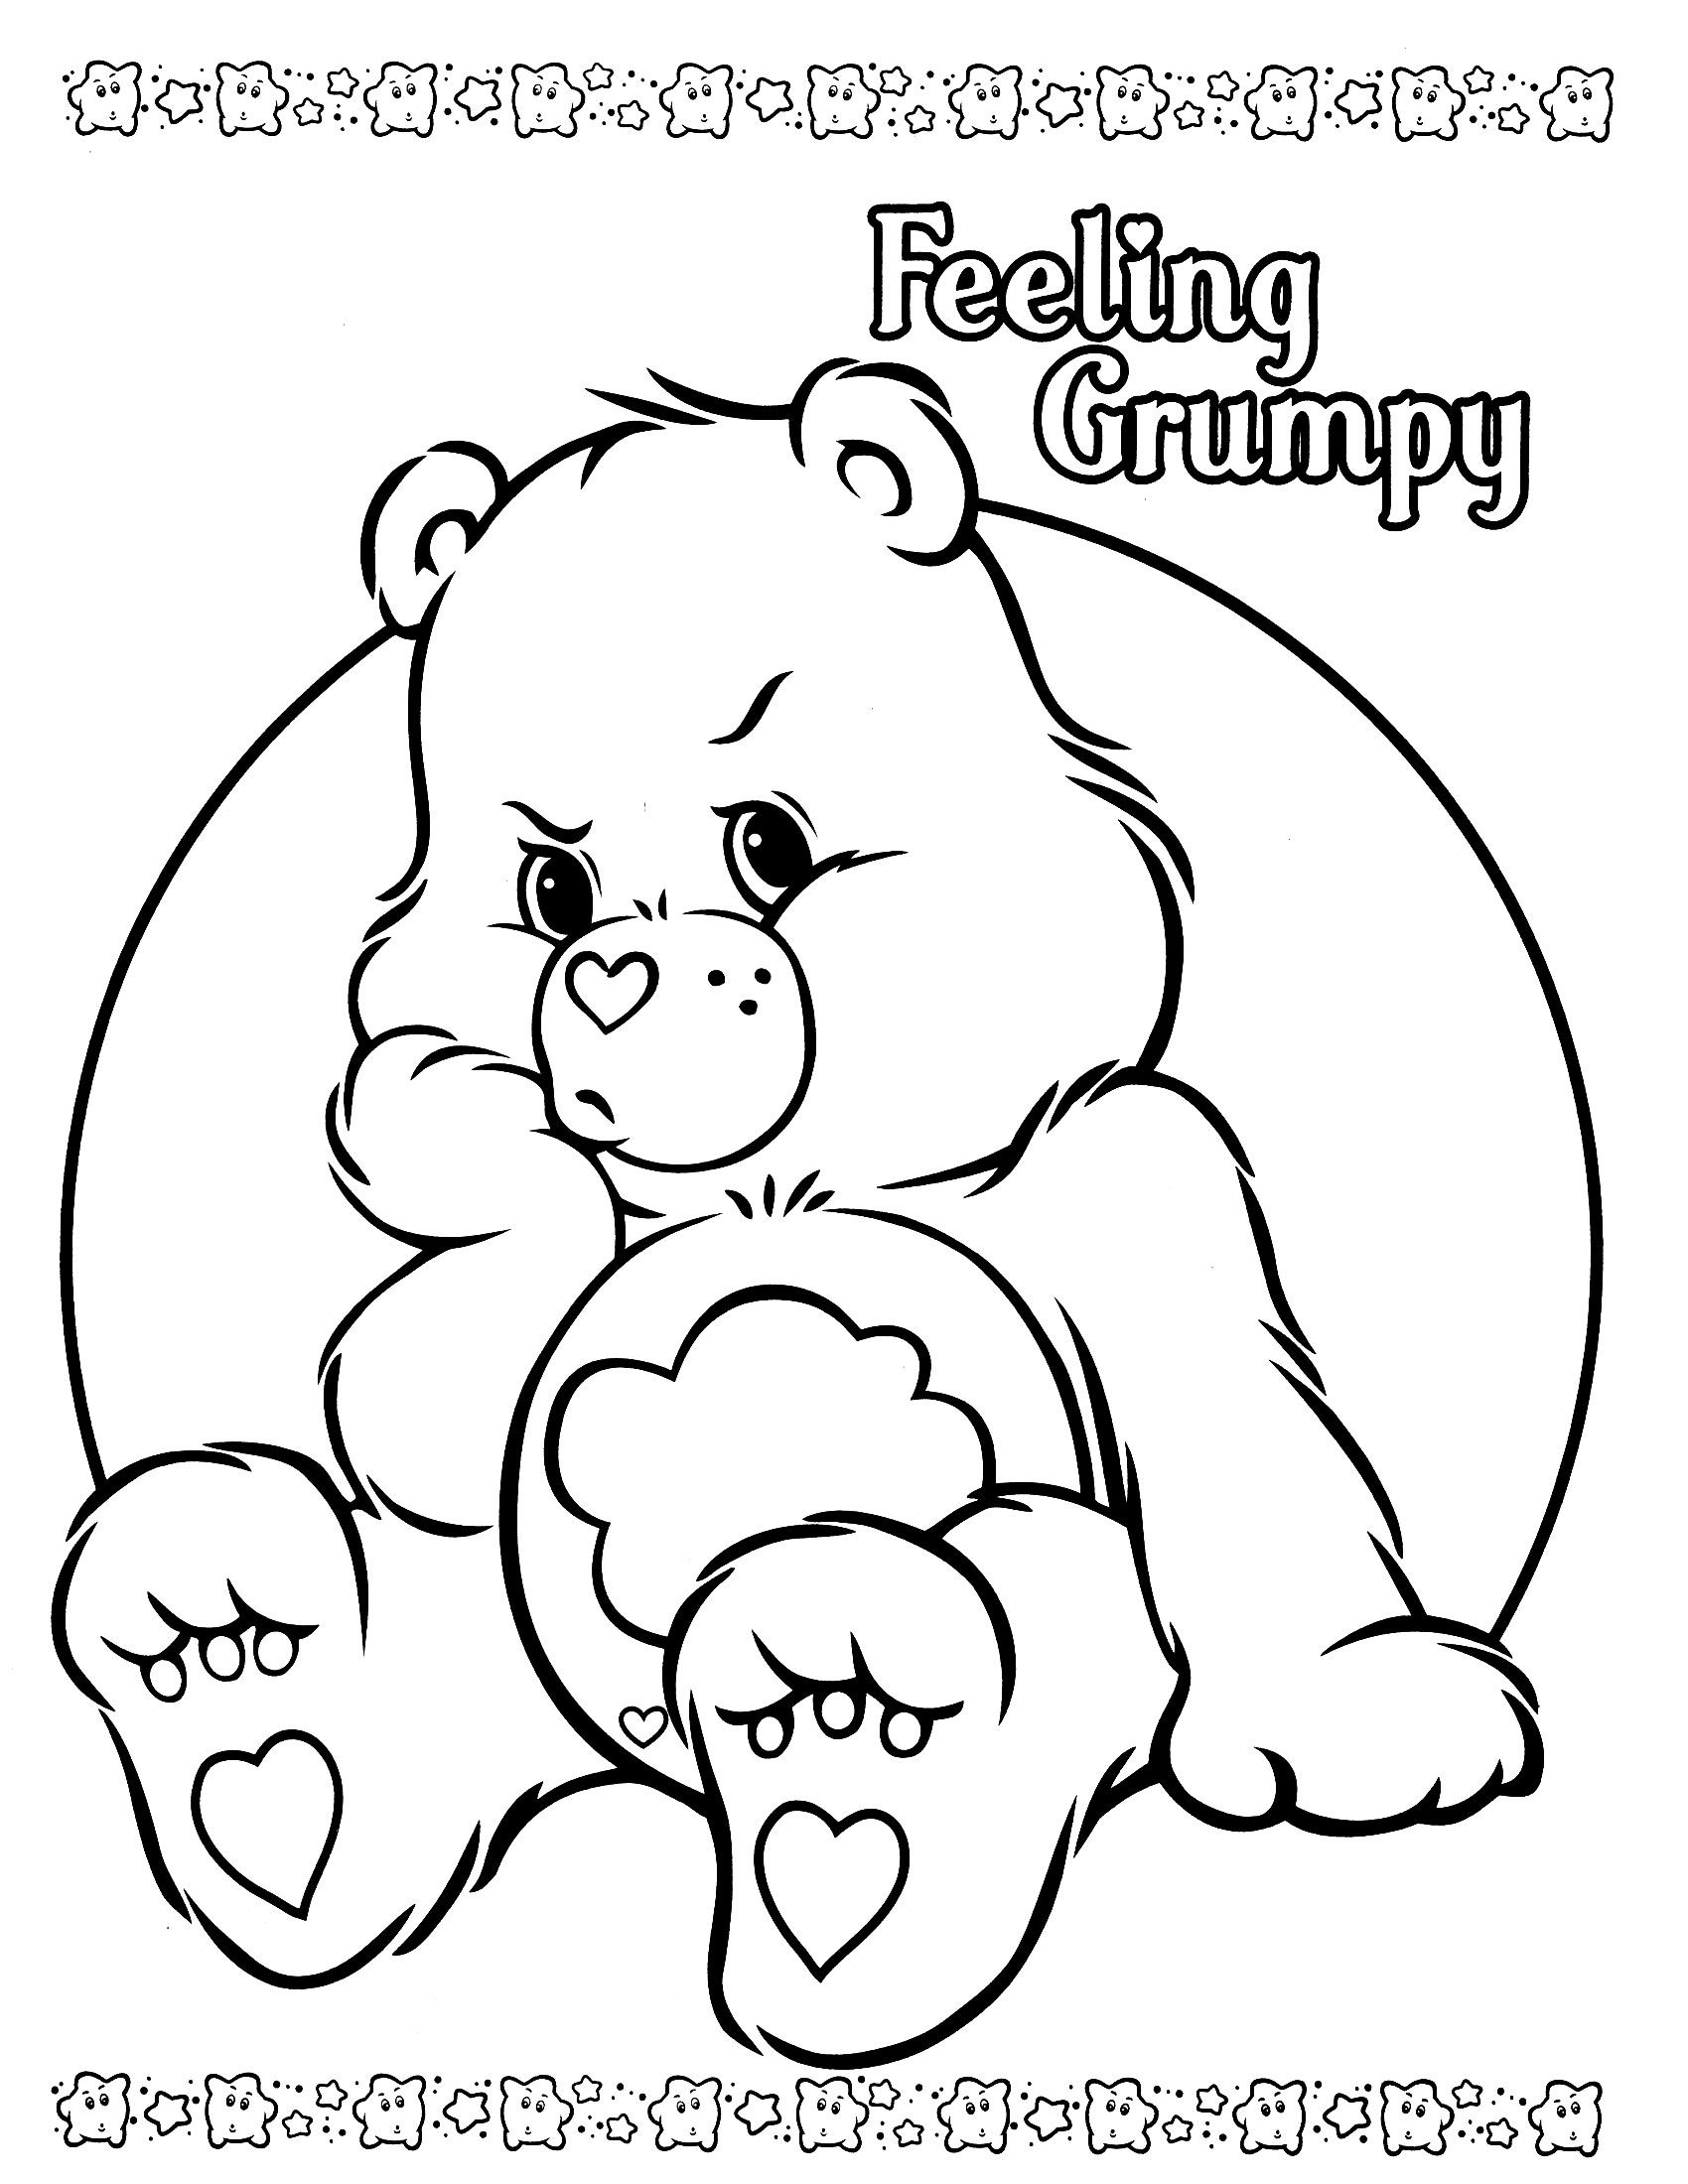 Care Bears Coloring Pages Feeling Grumpy Bear Coloring Pages Cartoon Coloring Pages Cute Coloring Pages